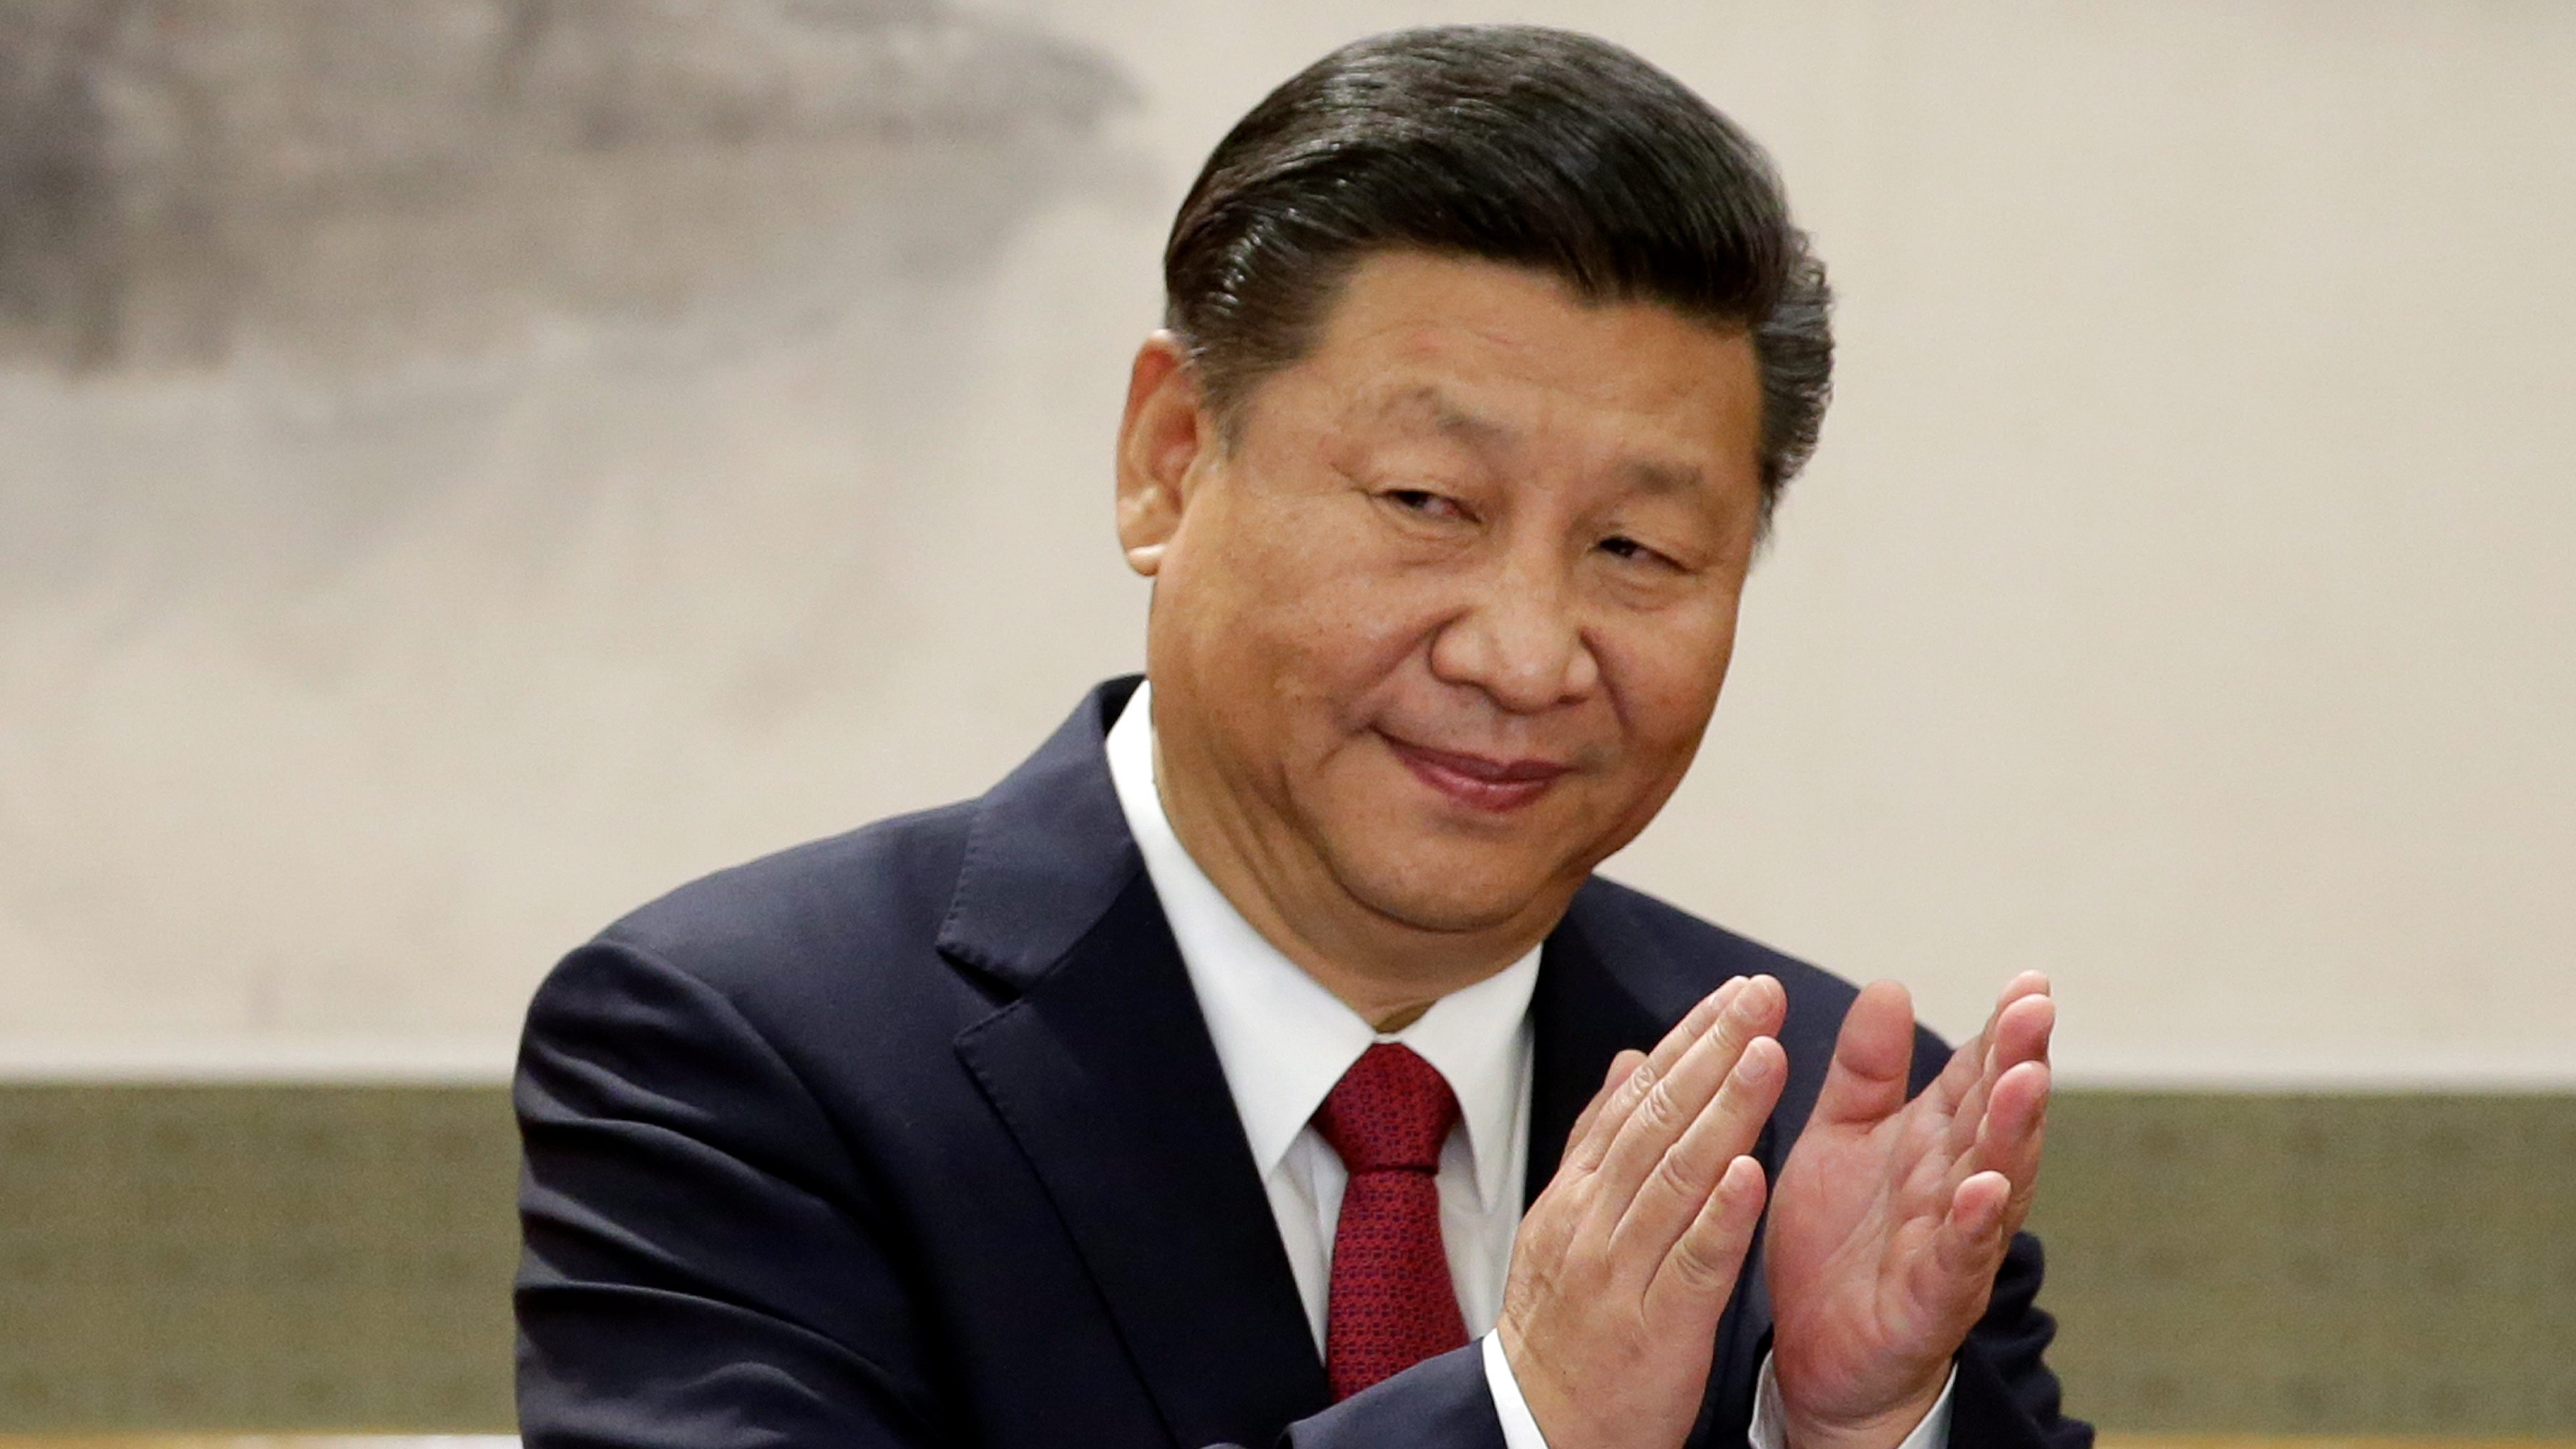 China's President Xi Jinping claps after his speech as he and other new Politburo Standing Committee members meet with the press at the Great Hall of the People in Beijing, China October 25, 2017.